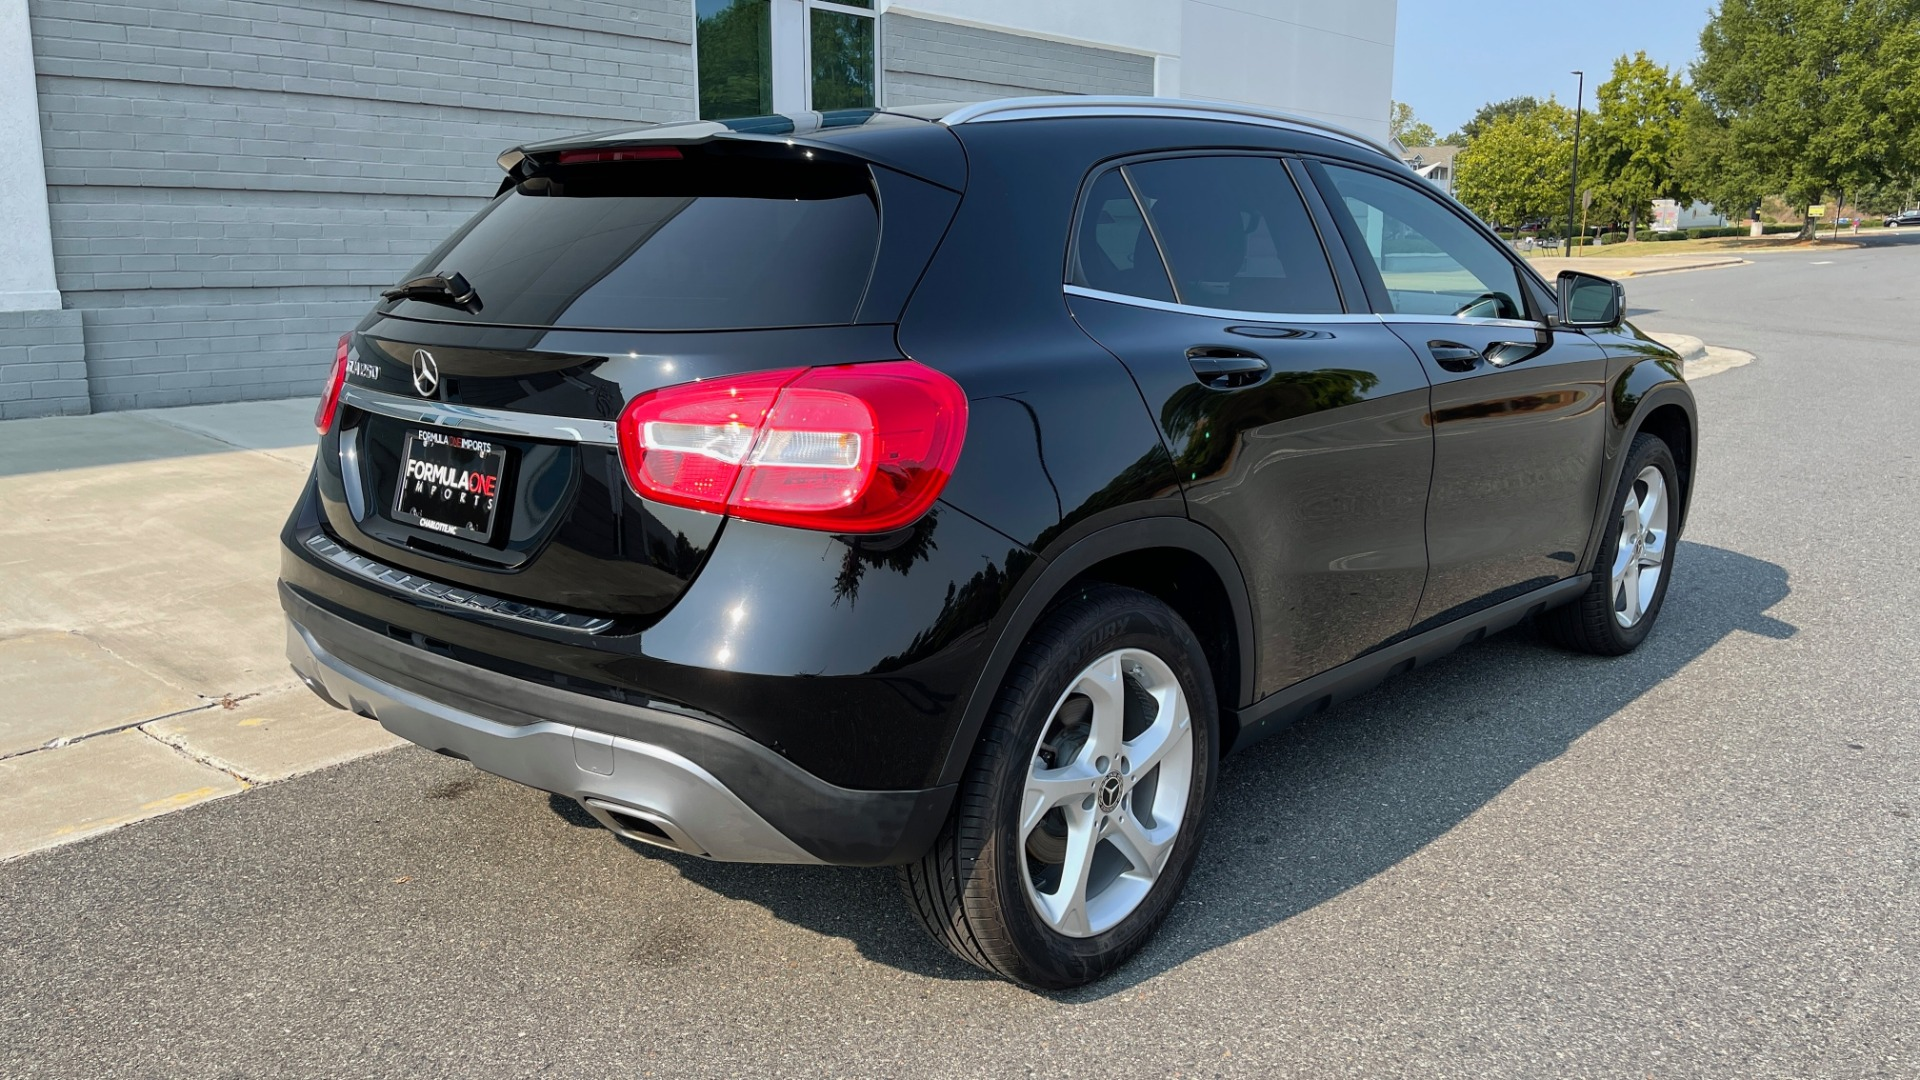 Used 2018 Mercedes-Benz GLA 250 SUV / GARMIN MAP PILOT / 18IN WHEELS / REARVIEW for sale $26,995 at Formula Imports in Charlotte NC 28227 7